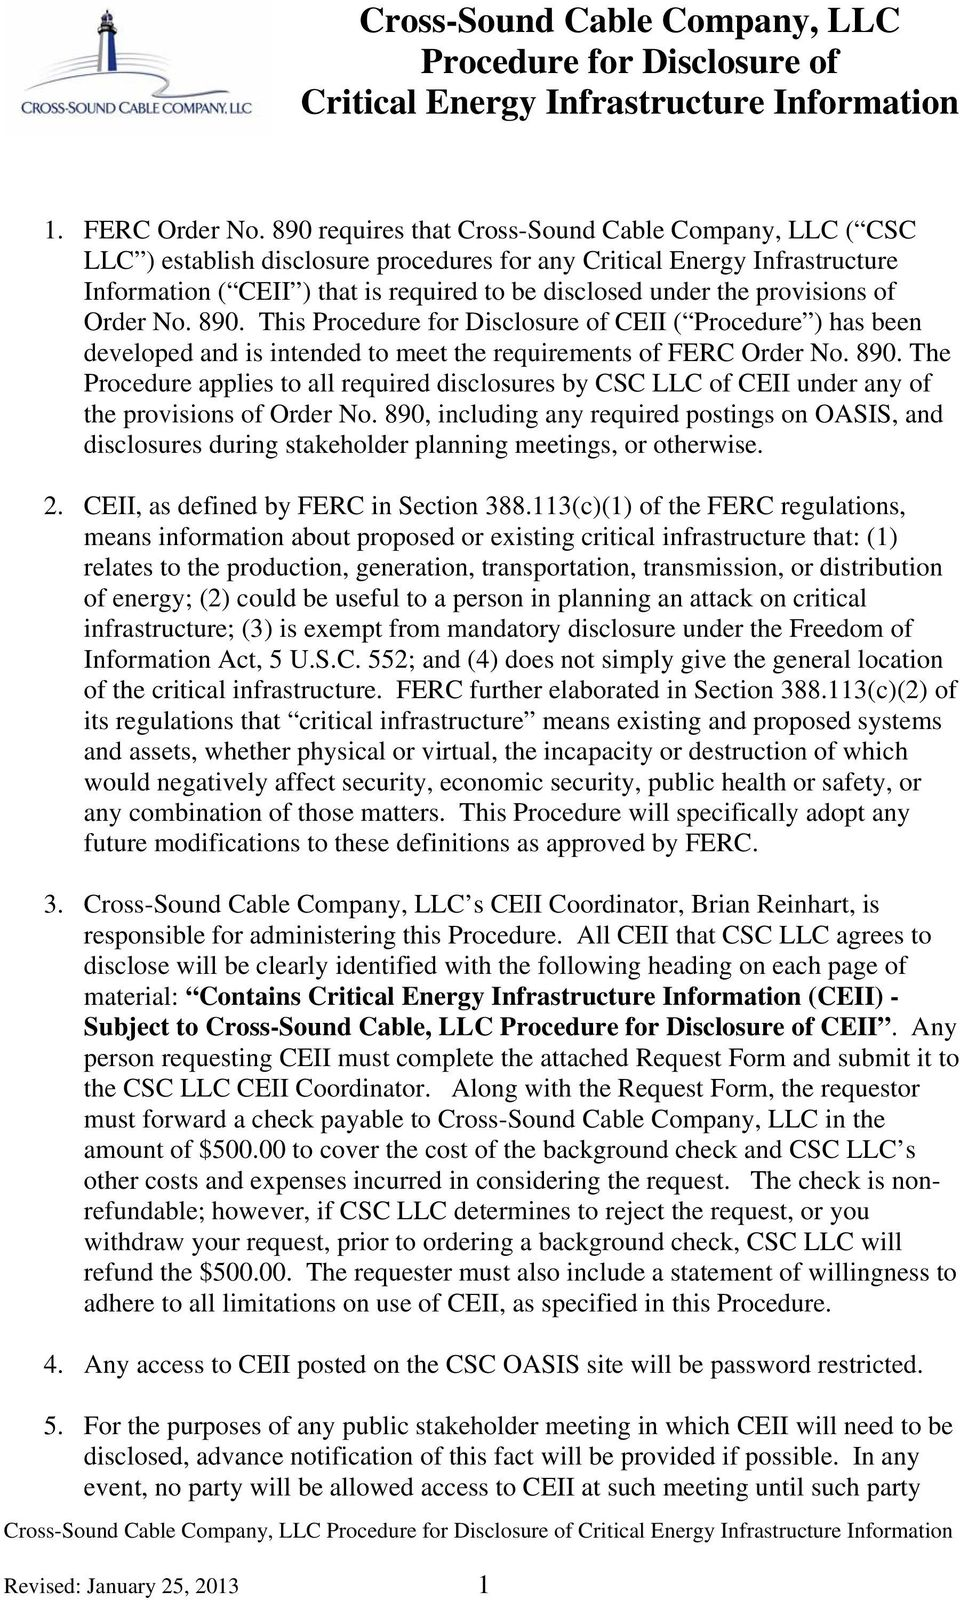 provisions of Order No. 890. This Procedure for Disclosure of CEII ( Procedure ) has been developed and is intended to meet the requirements of FERC Order No. 890. The Procedure applies to all required disclosures by CSC LLC of CEII under any of the provisions of Order No.